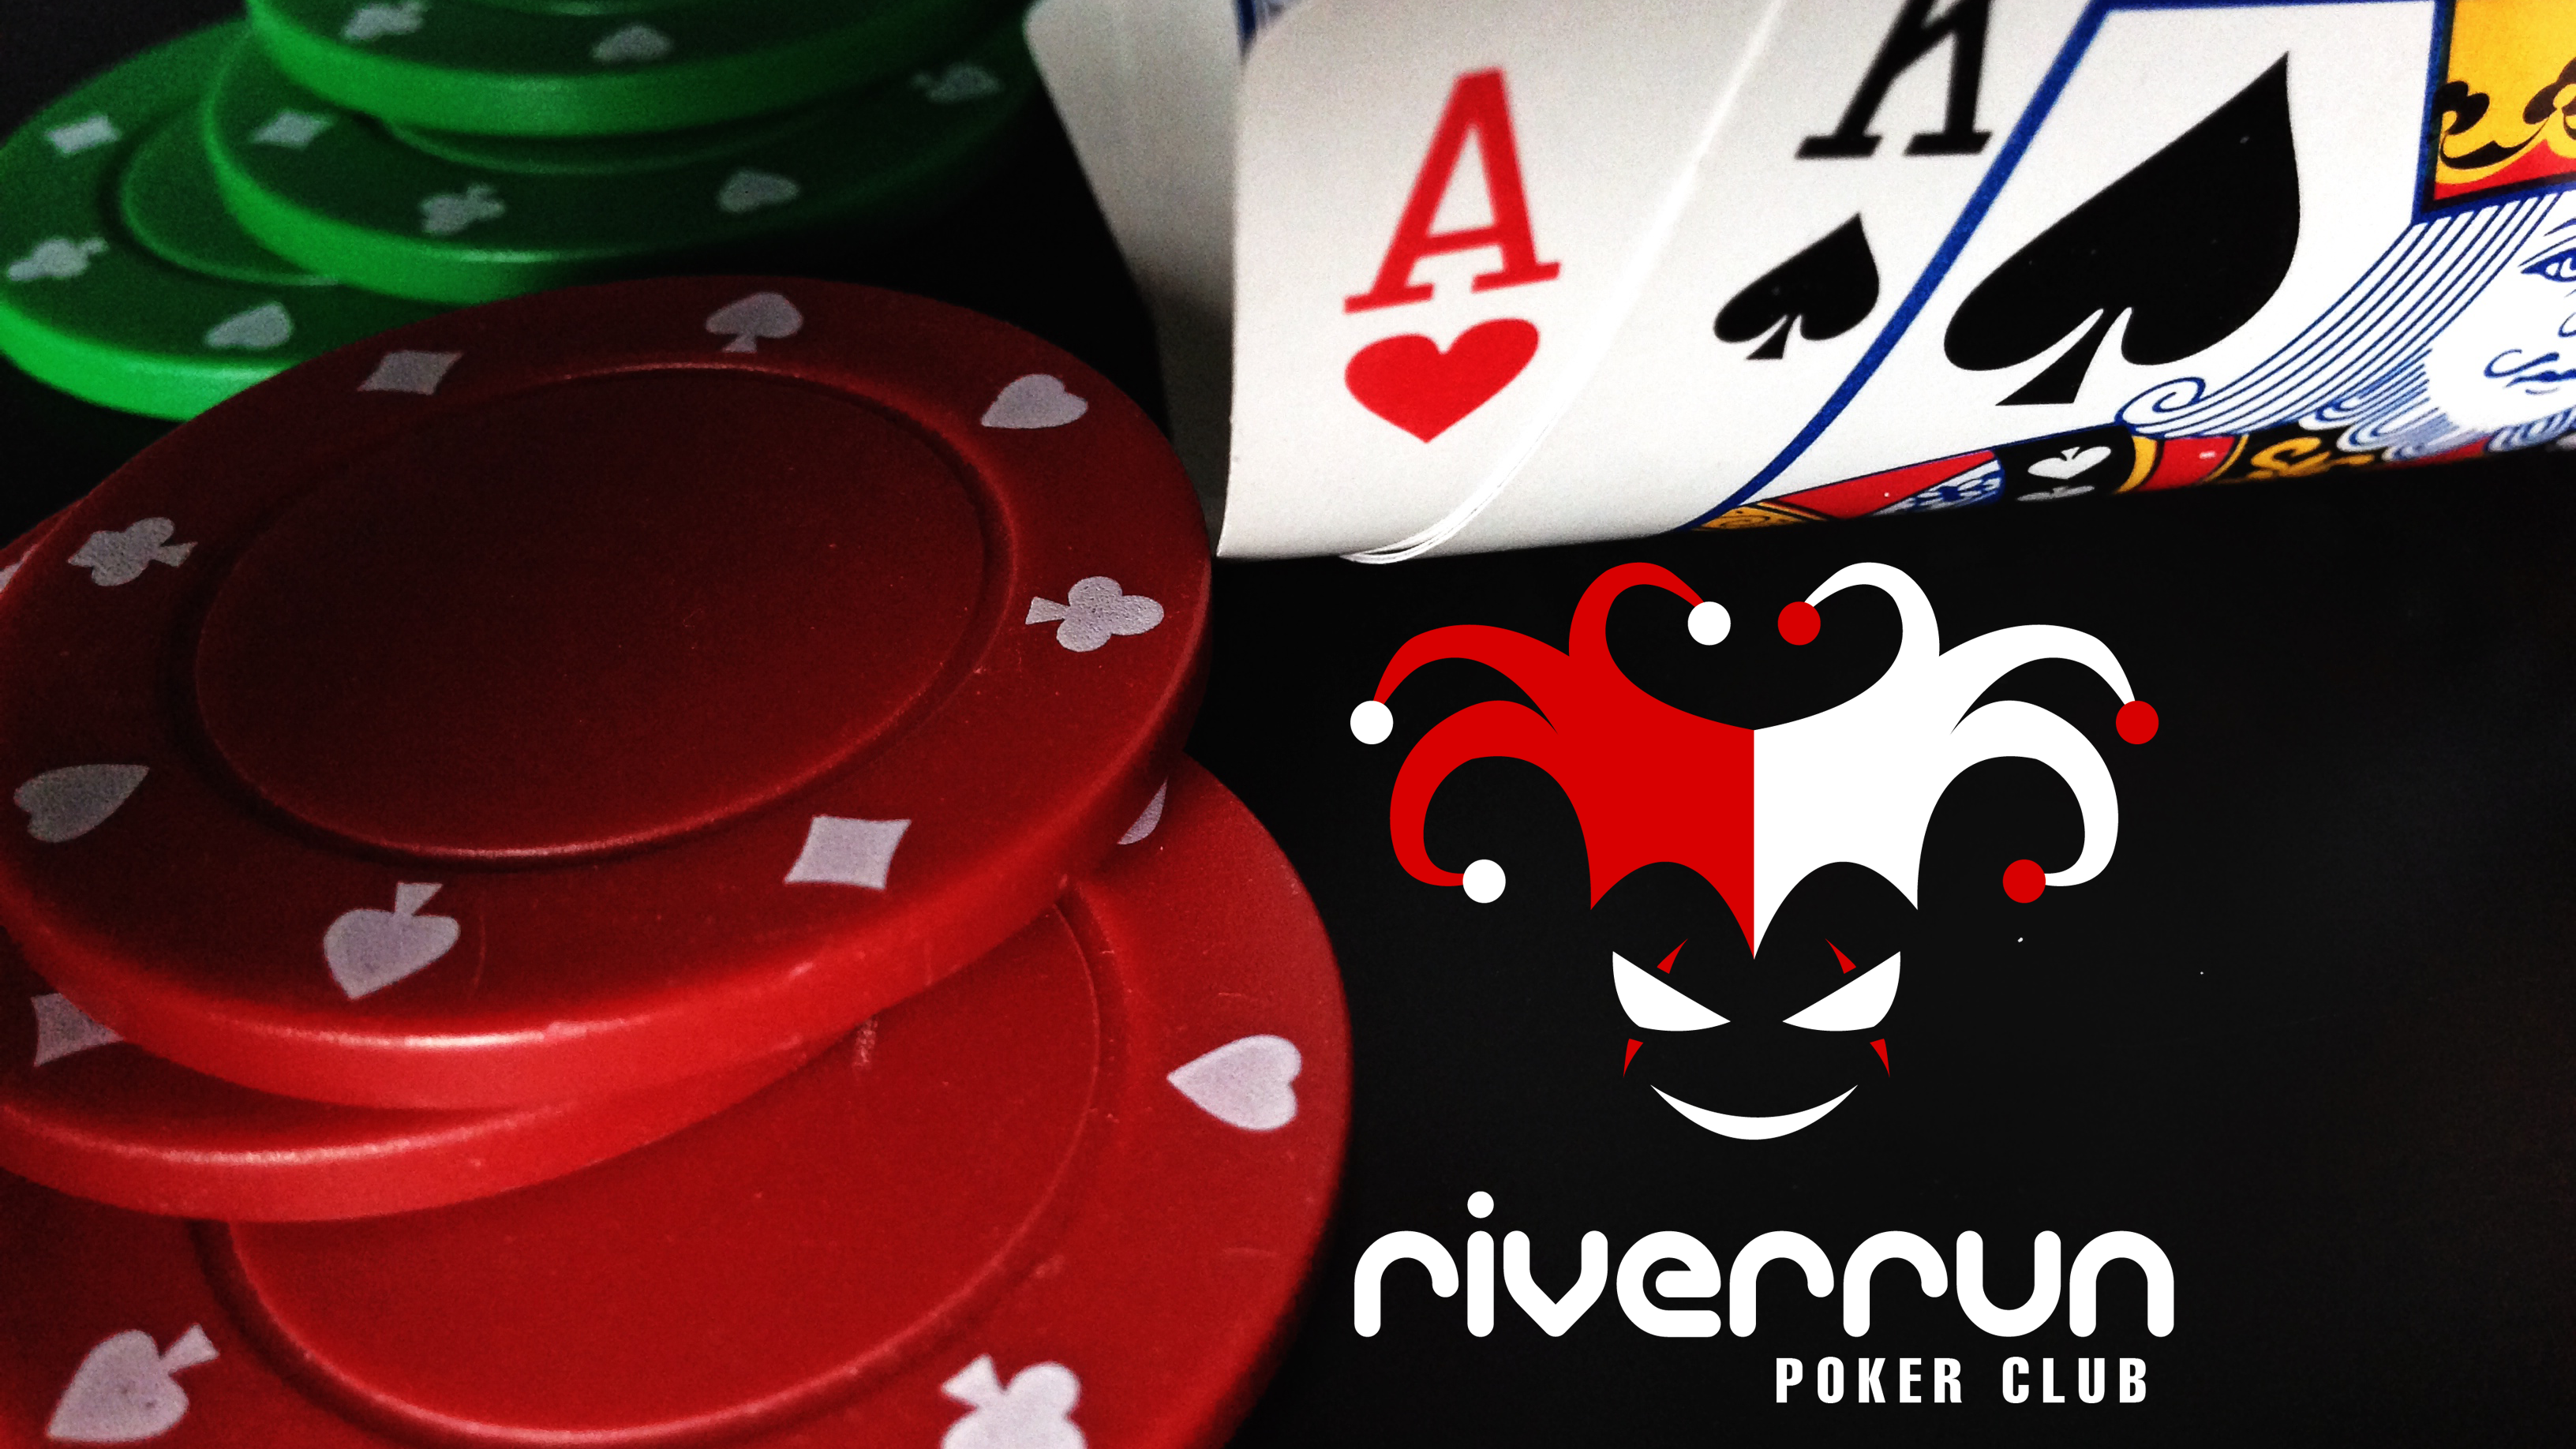 Riverrun Poker Club Hialeah Fl Meetup